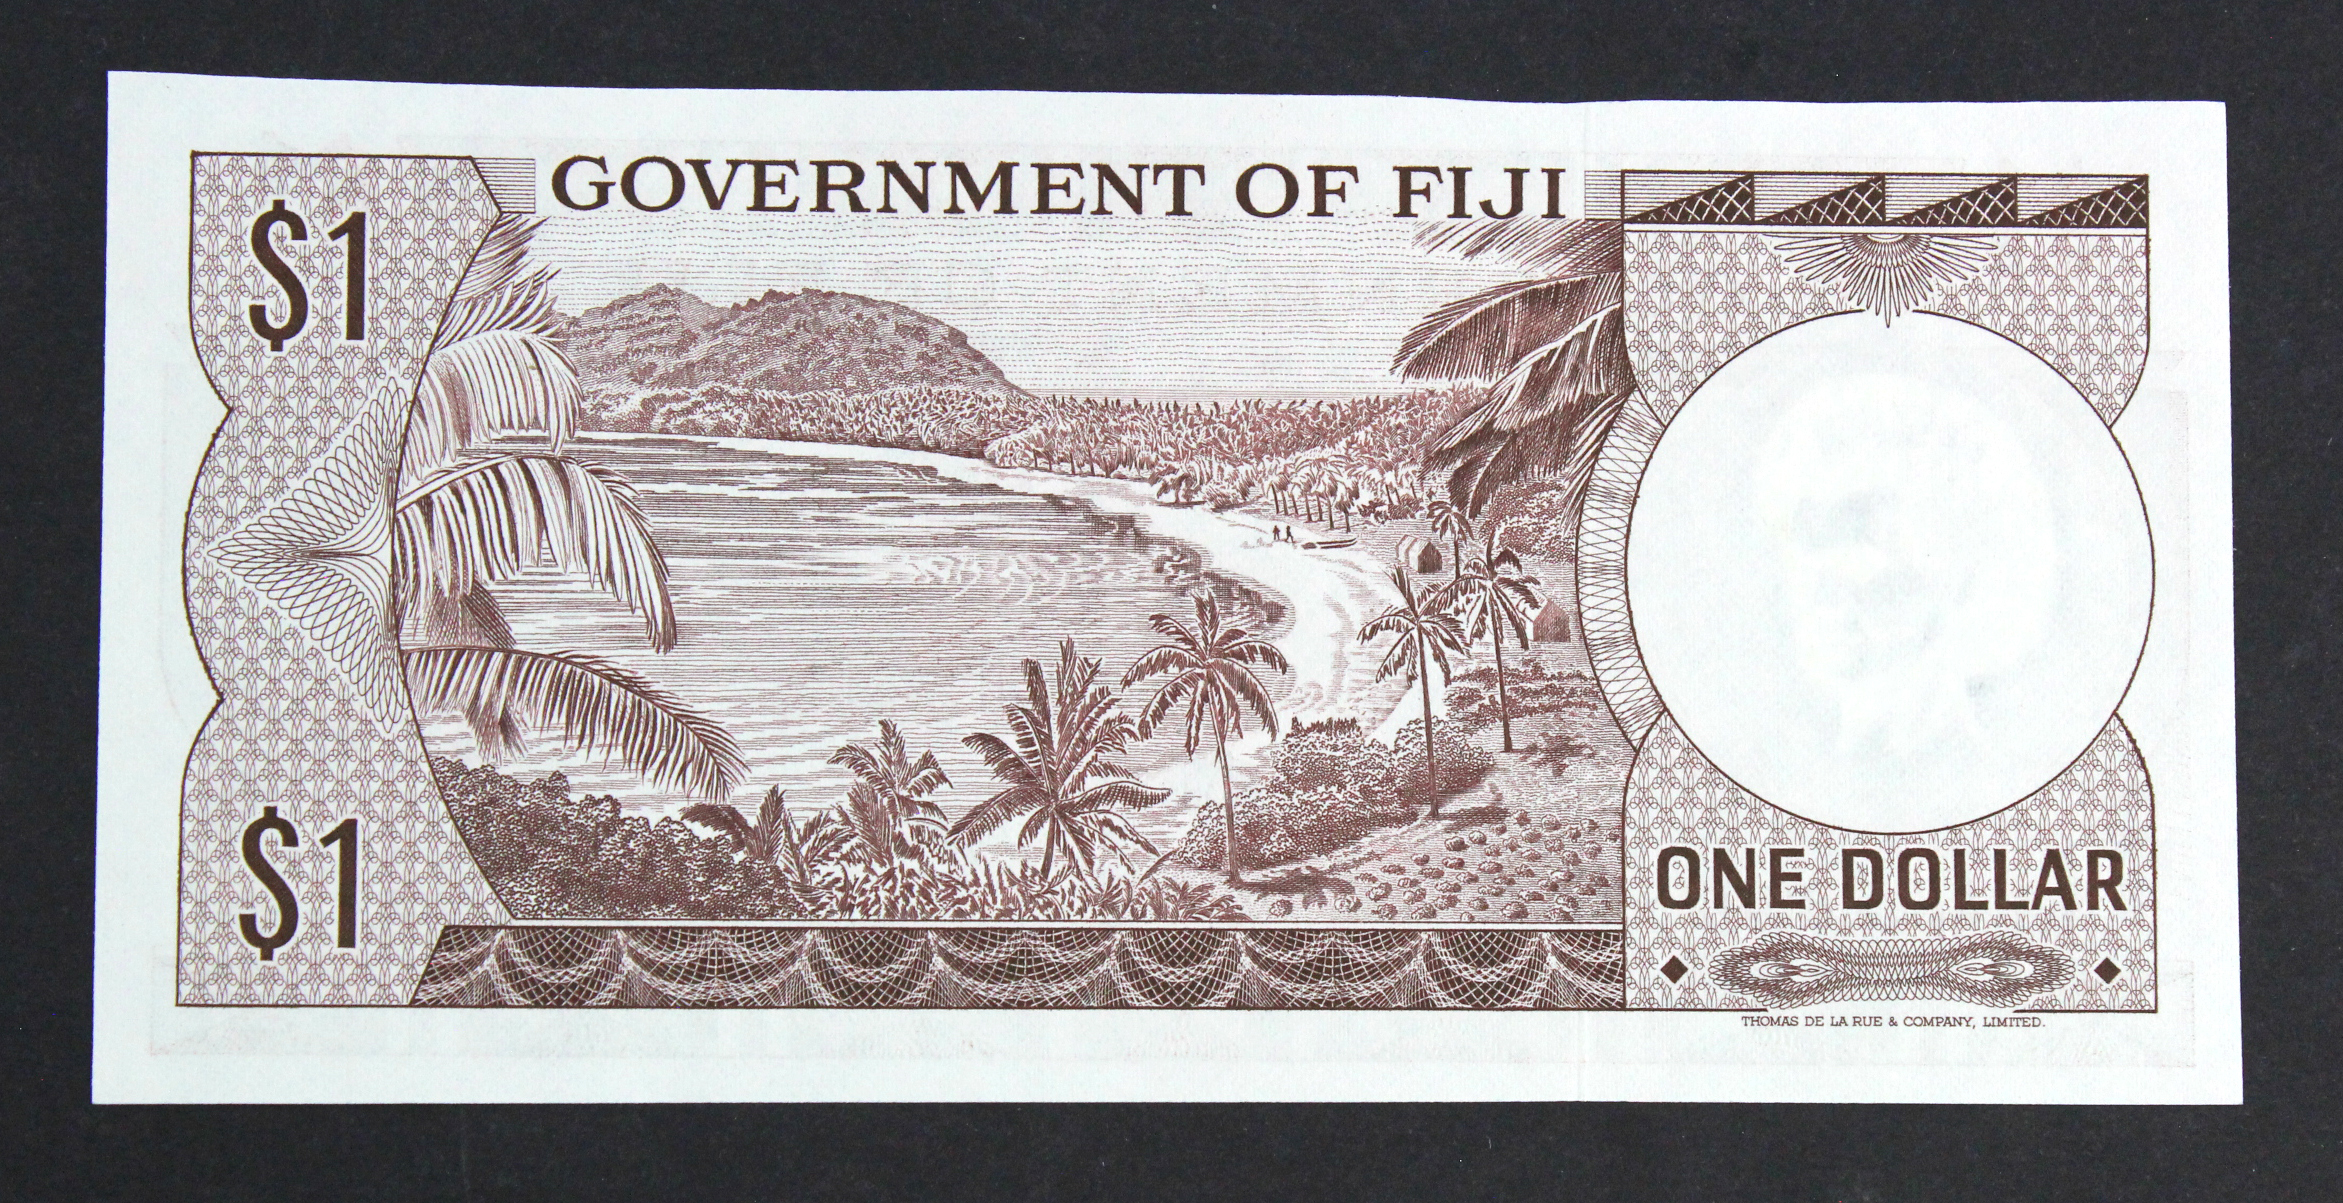 Fiji 1 Dollar issued 1969, signed Ritchie & Barnes, serial A/2 289025 (TBB B336a, Pick59a) - Image 2 of 2